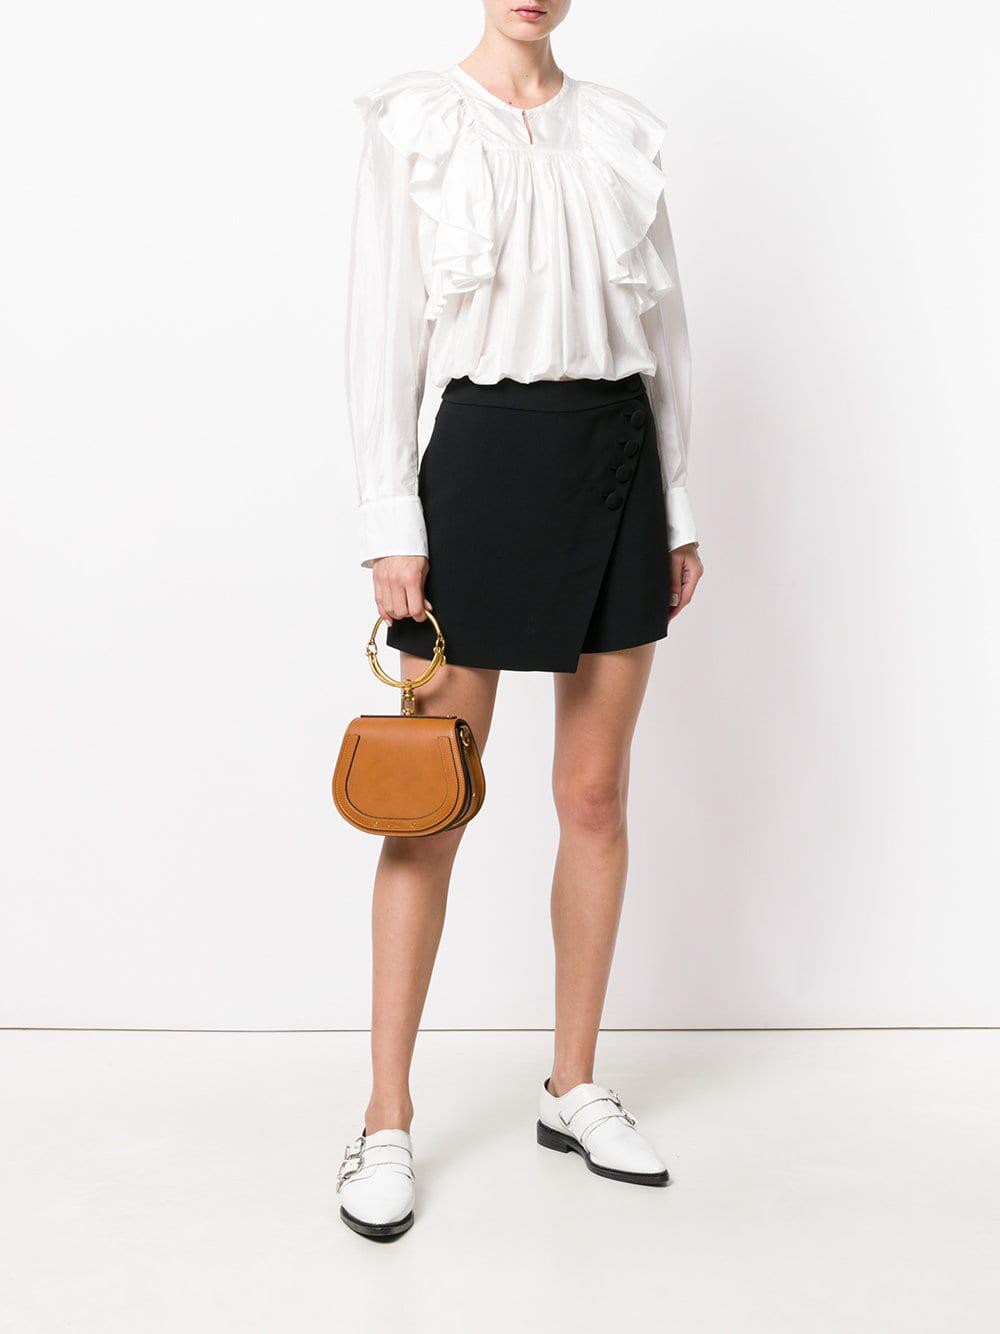 Save Chloé Shoulder Small 4084507042253591 In Nile Brown Bag Lyst 1 xTW4p6ng